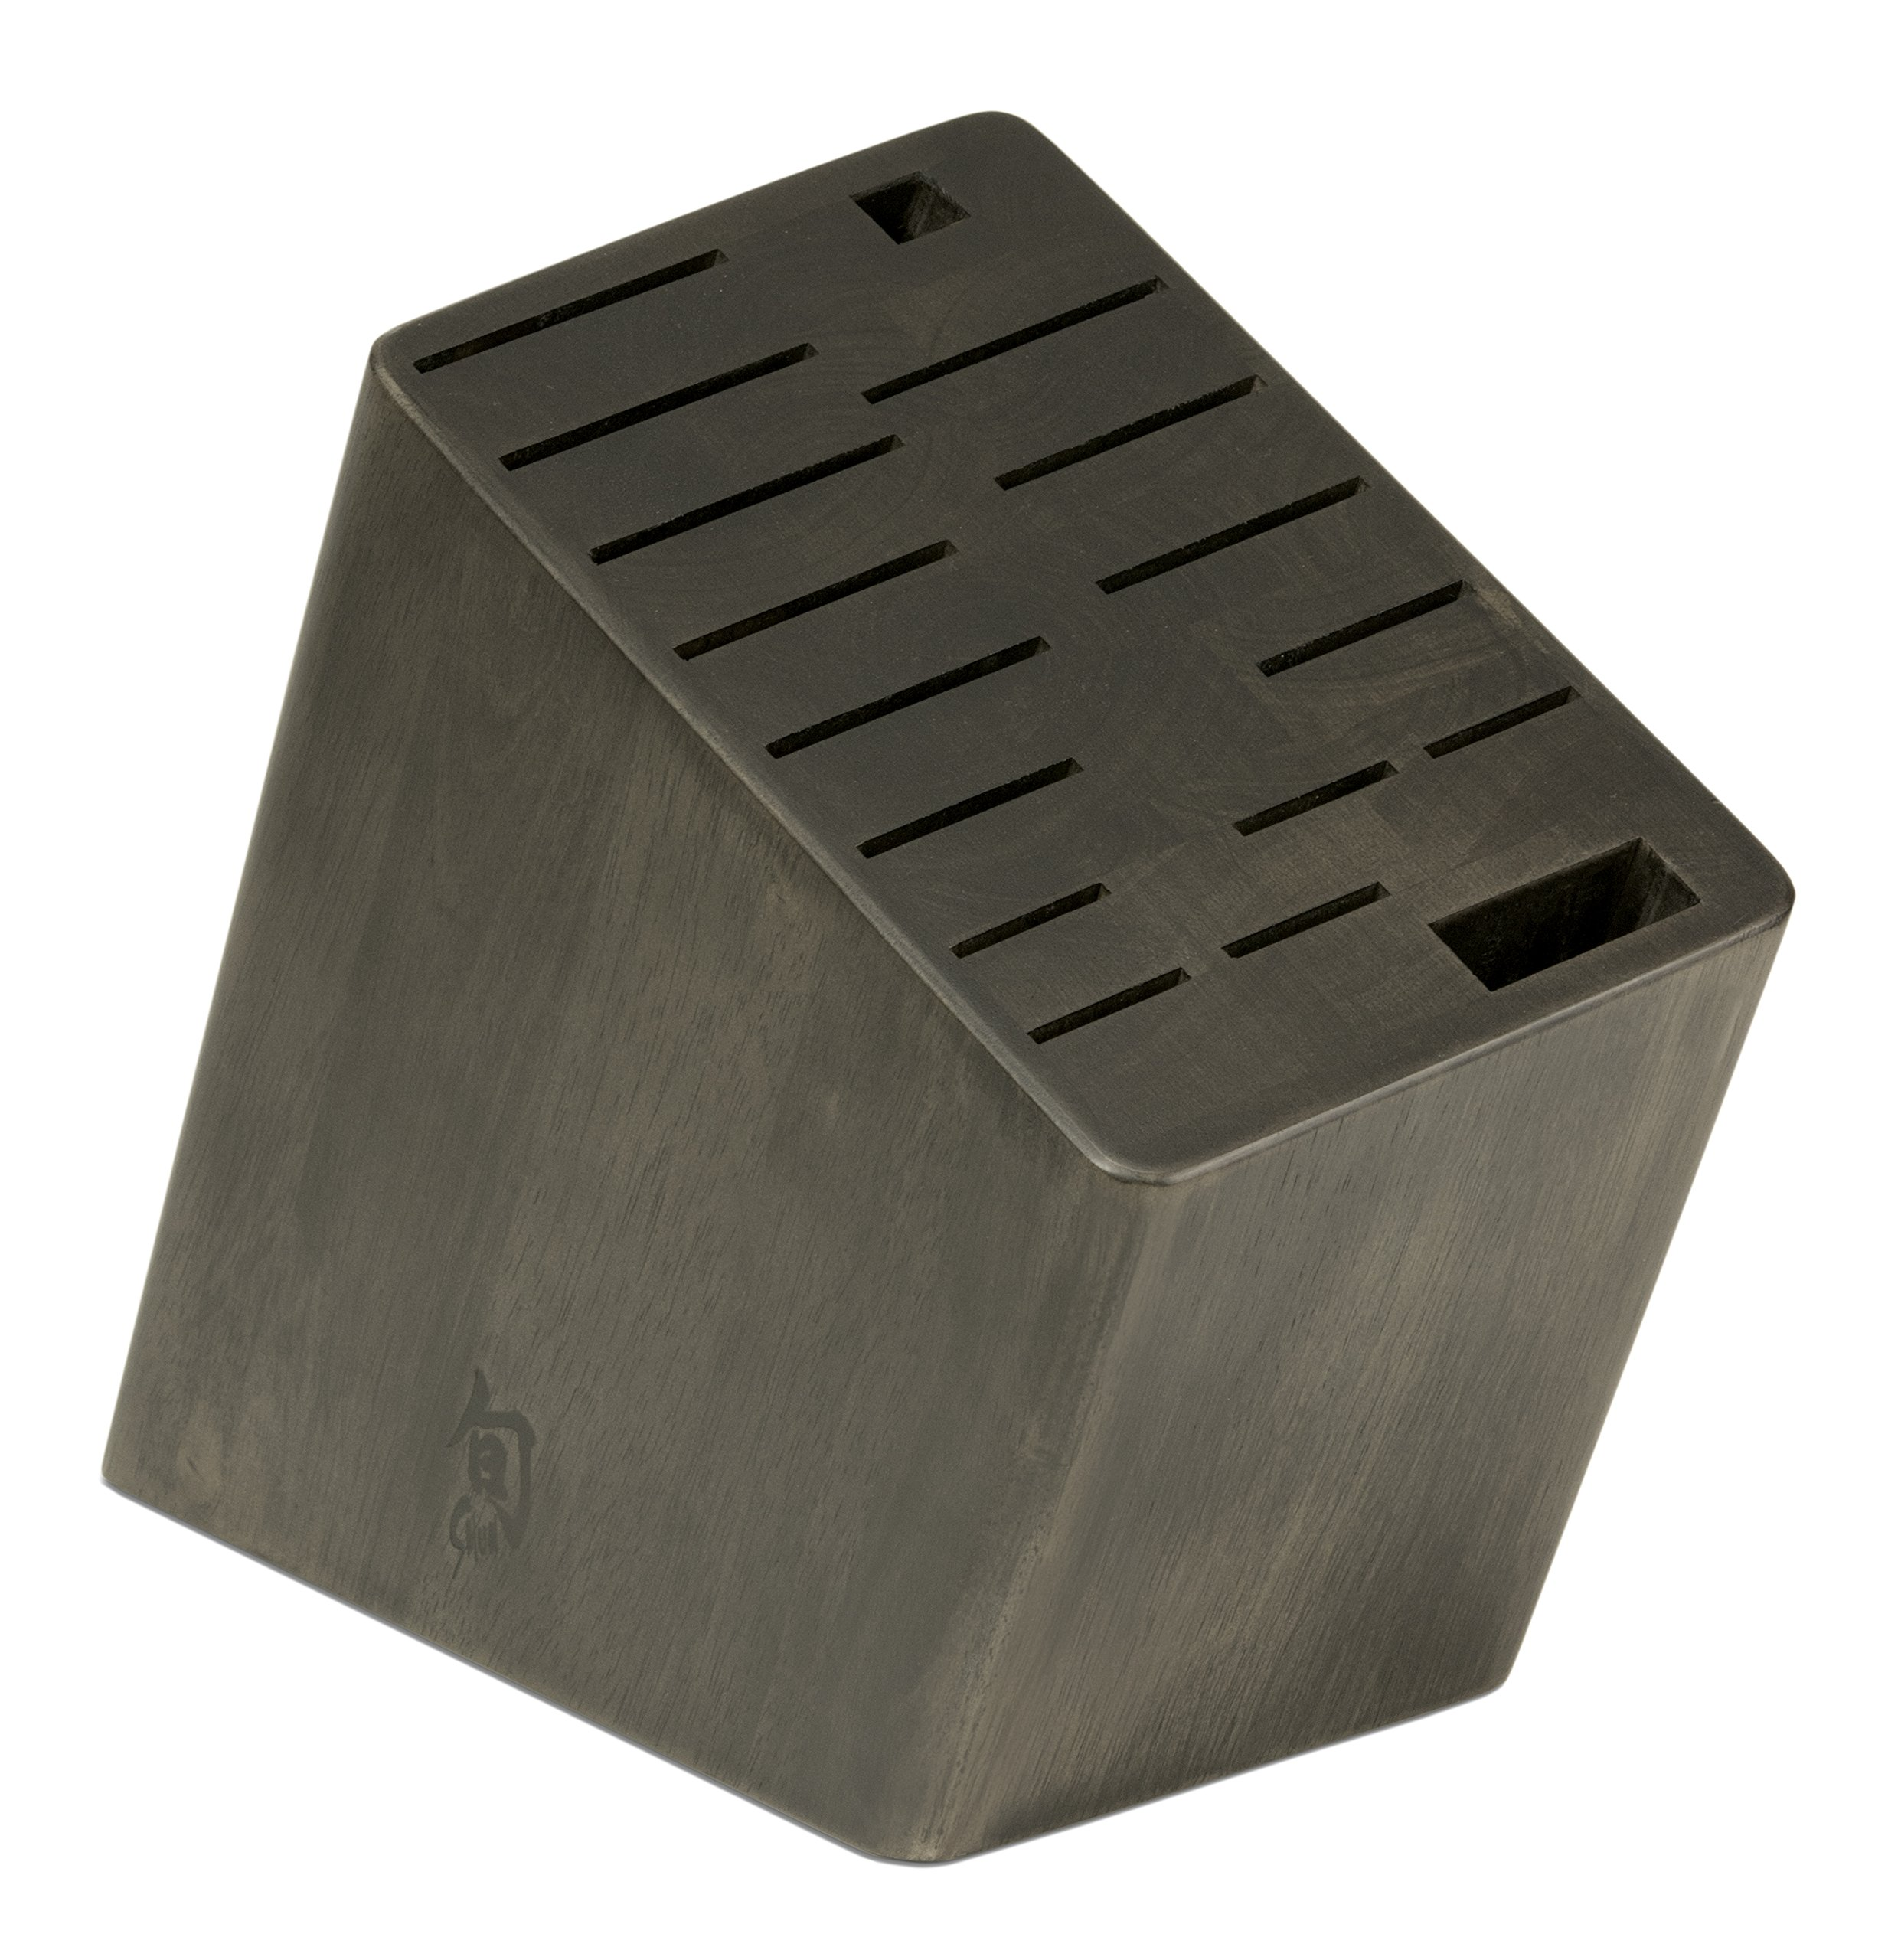 Shun 17-Slot Angled Knife Block; Perfectly Matches Kanso Line Tagayasan Handle; Coordinates Beautifully with All Shun Lines; Includes Slots for 15 Knives, a Honing Steel and Kitchen Shears by Shun (Image #1)